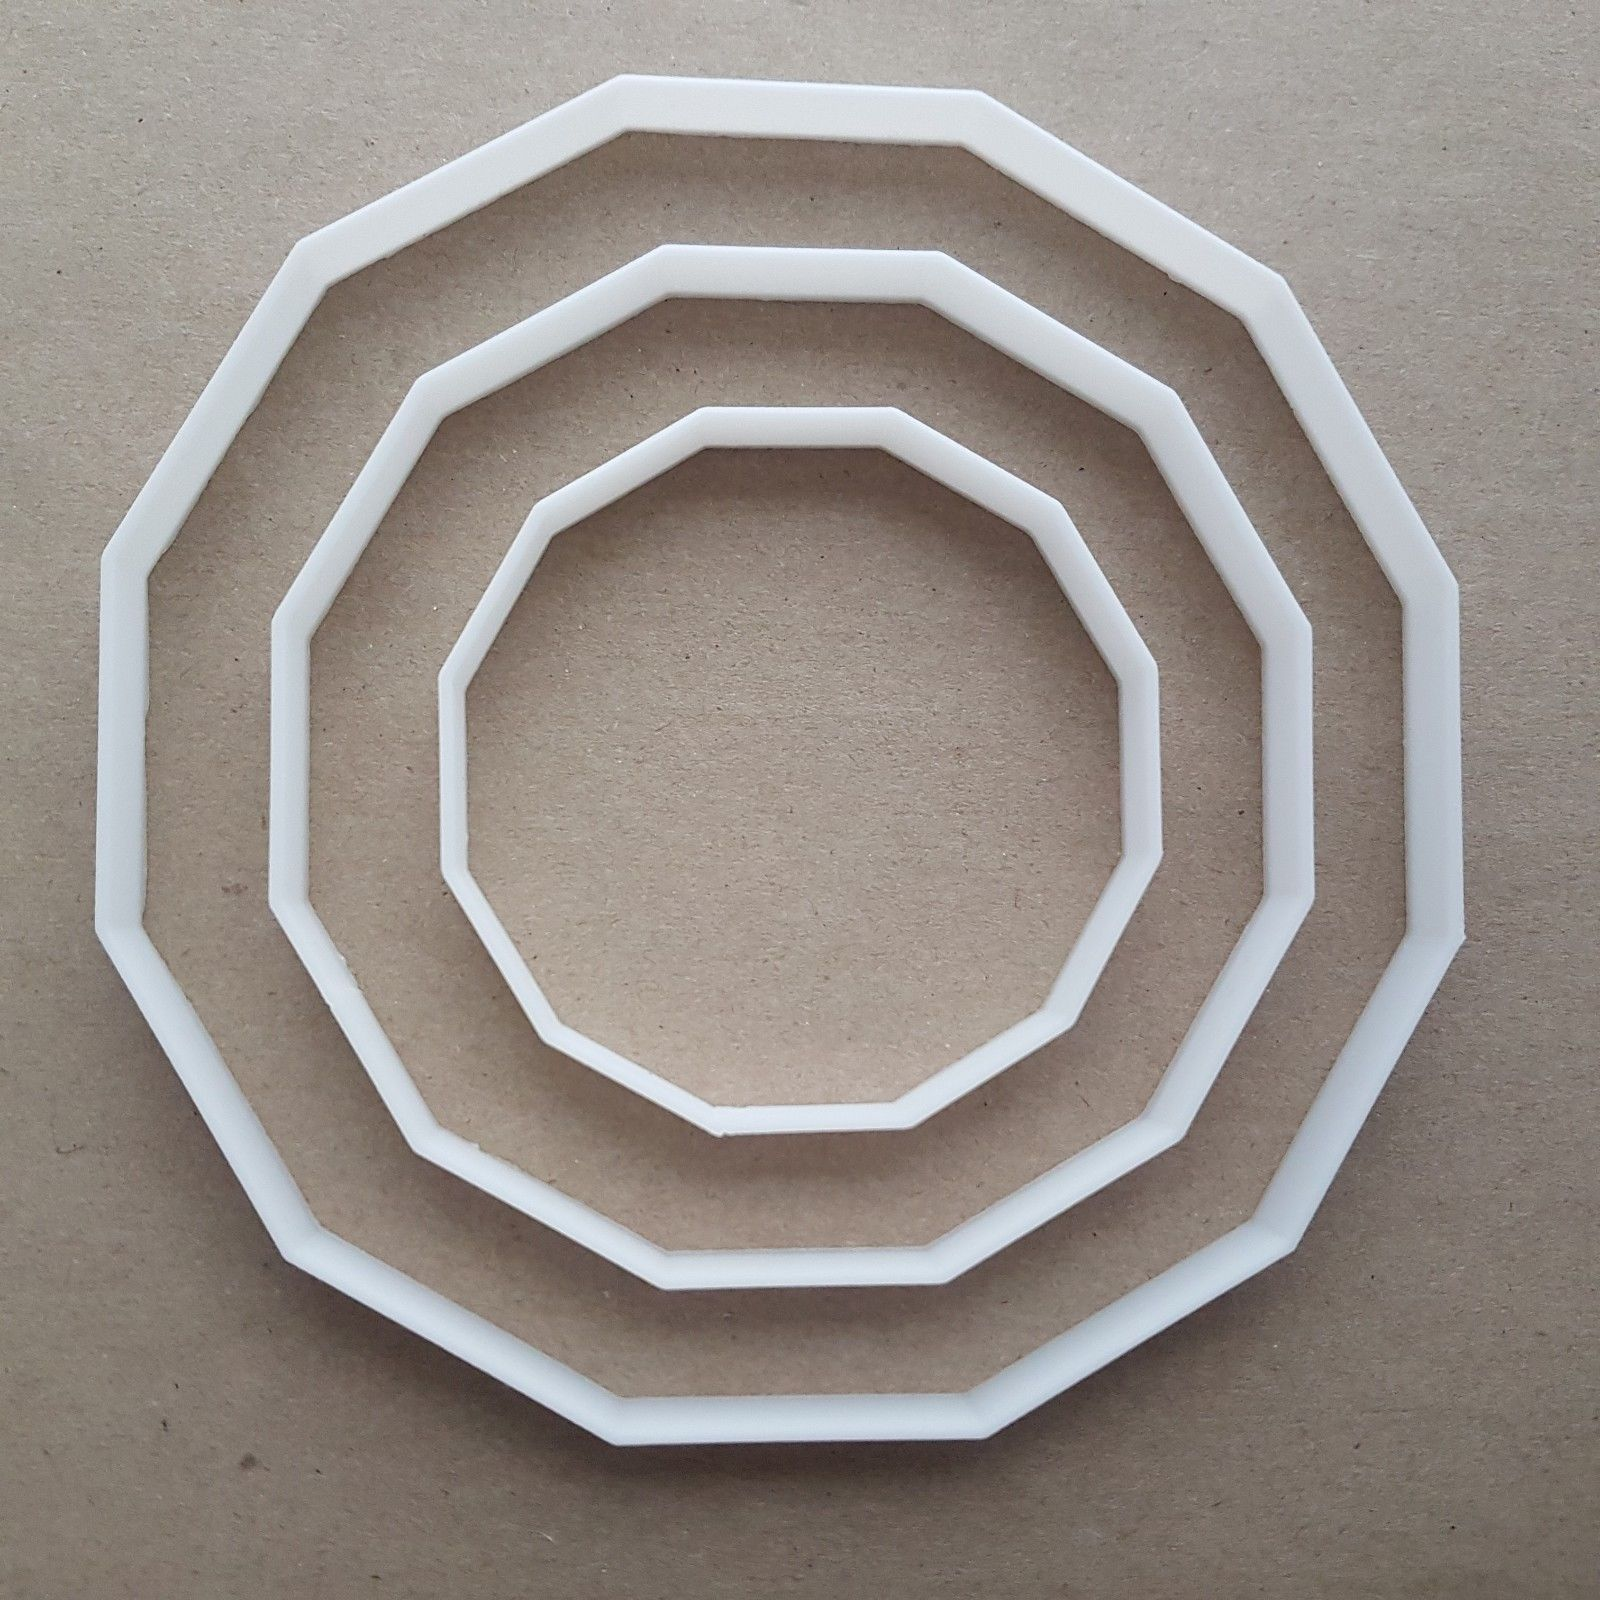 Dodecagon Twelve Side Polygon Shape Cookie Cutter Dough Biscuit Fondant  Sharp Stencil Basic Maths Mathematics Sided